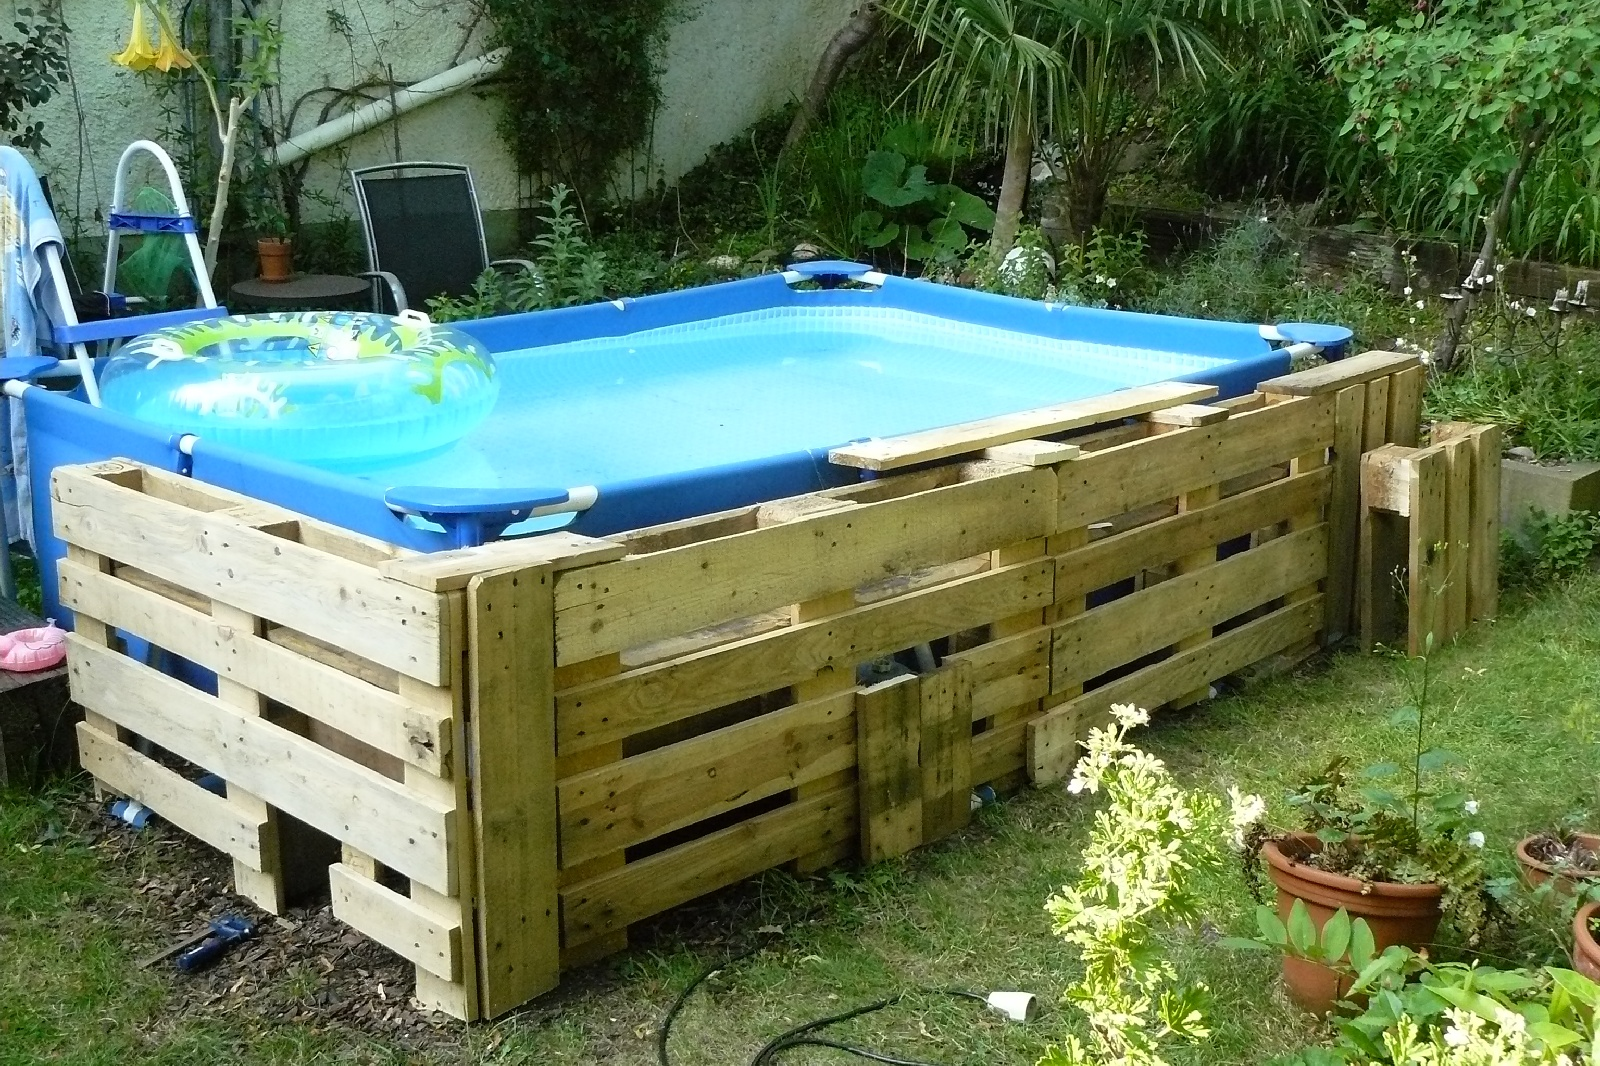 Pool Aus Paletten Eckig Pool Paletten 10068 Made House Decor